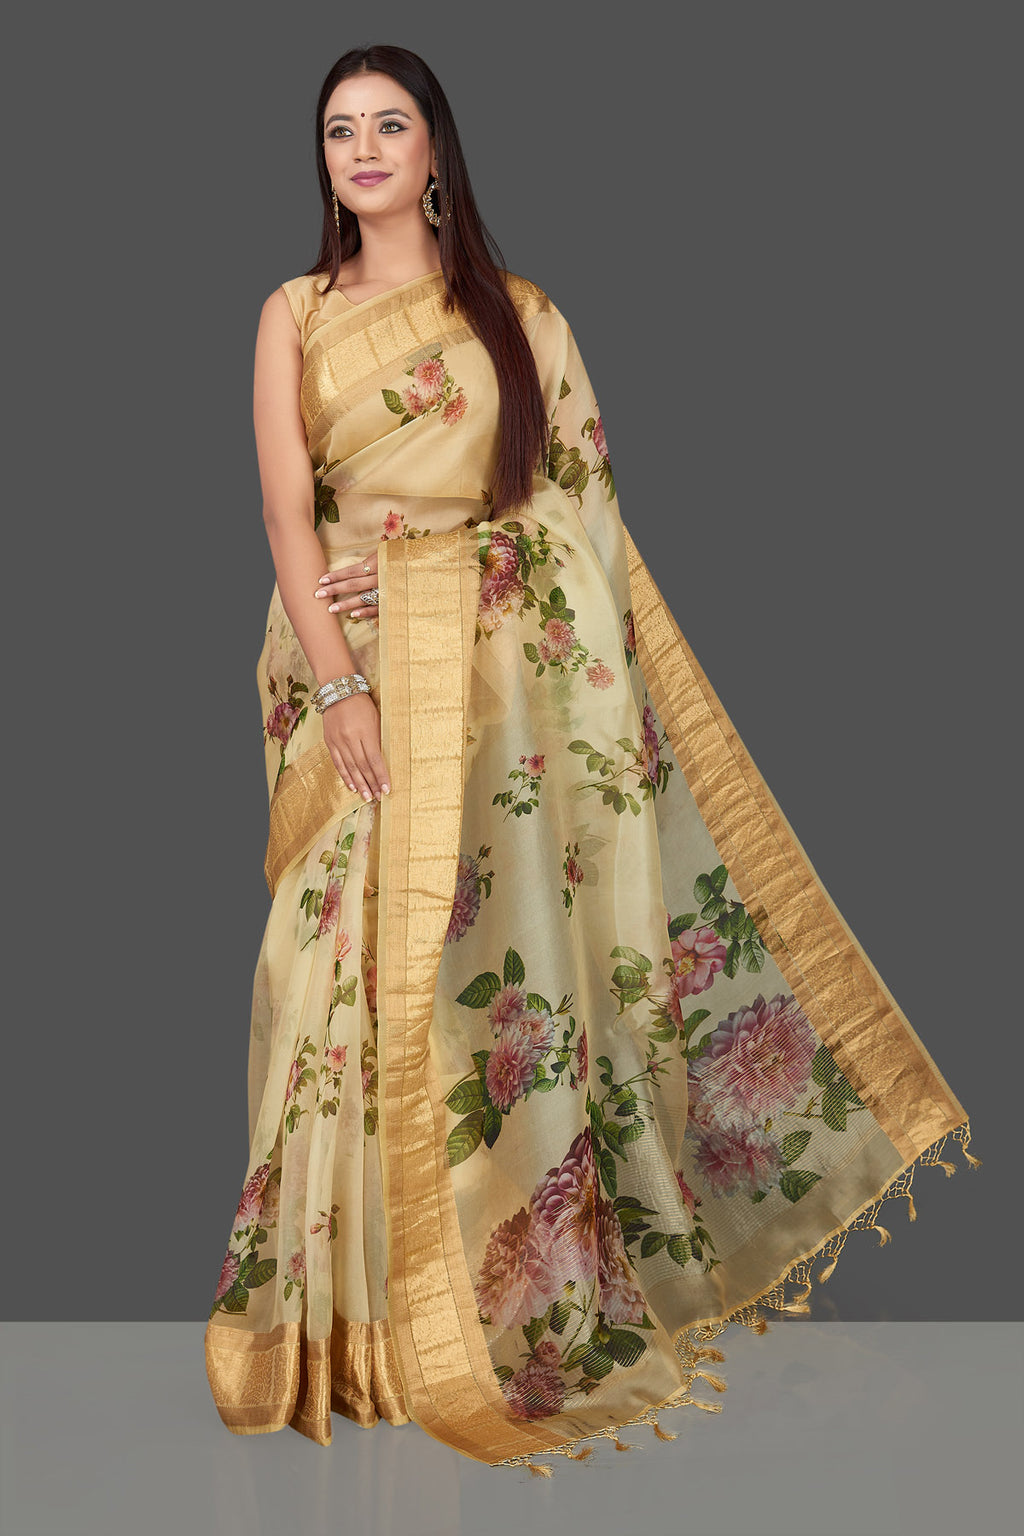 Shop beautiful yellow organza Banarasi saree online in USA with floral print and zari border. Radiate ethnic elan on festivals and weddings with stunning muga sarees, pure silk sarees, traditional Banarasi sarees from Pure Elegance Indian fashion store in USA.-full view